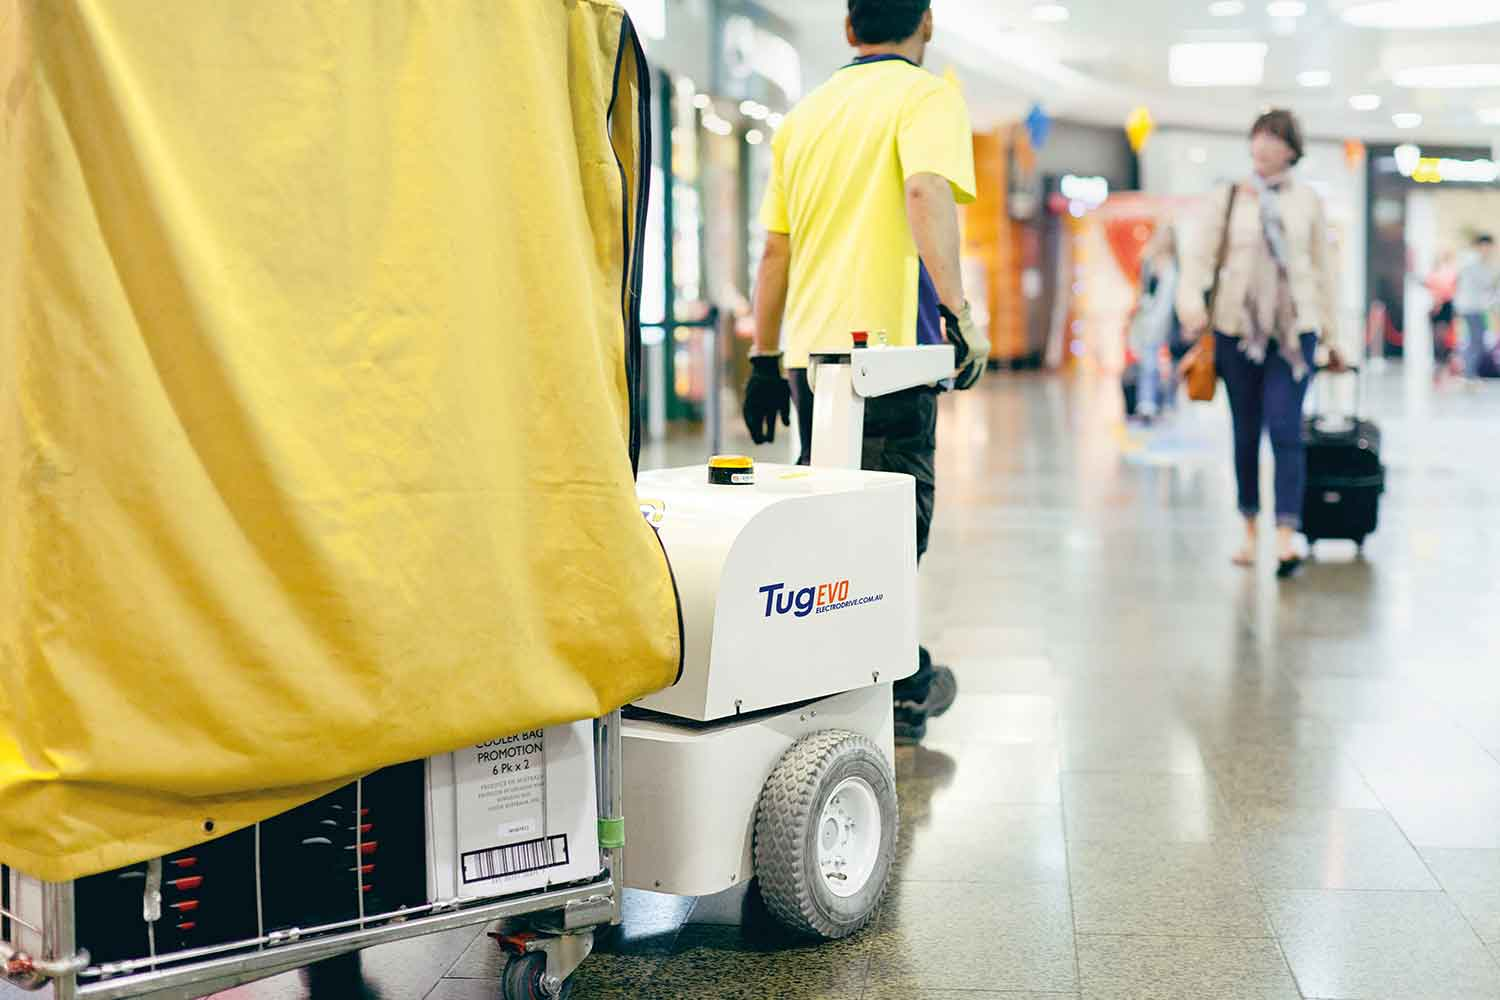 Electrodrive's Tug Evo towing a large trolley through an airport